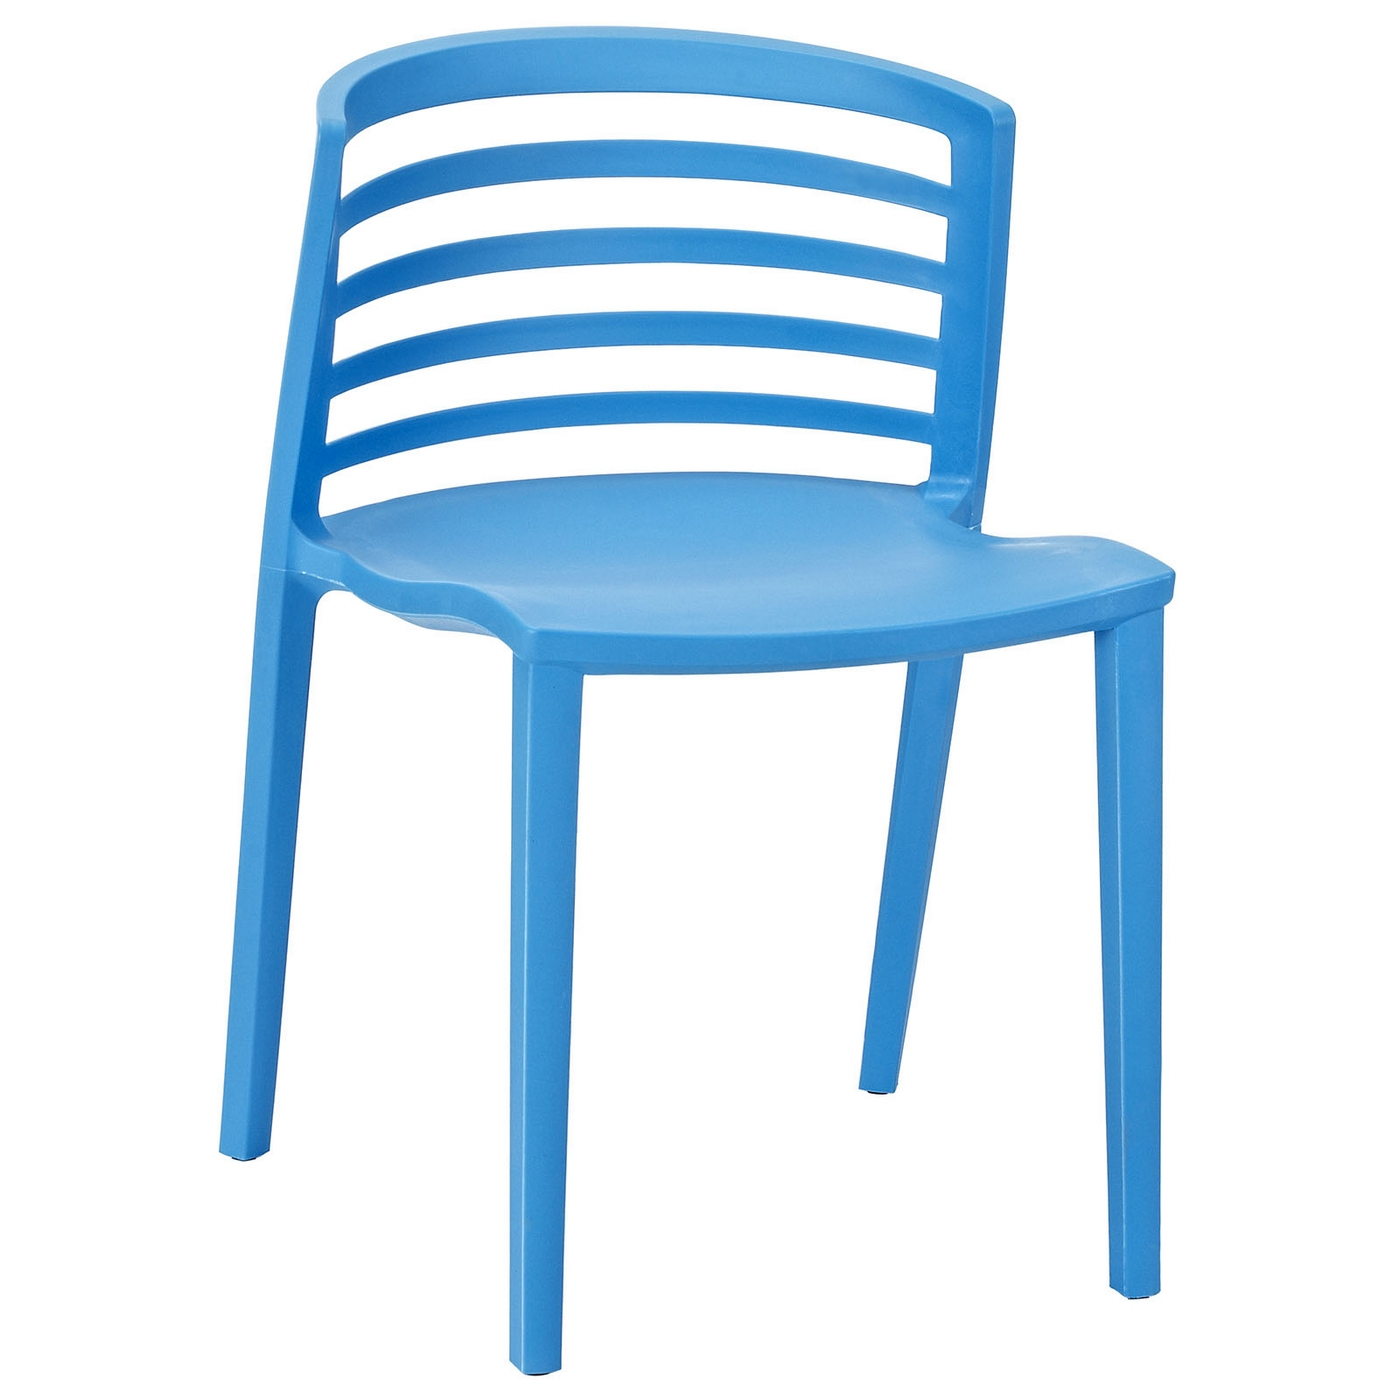 curvy modern multi purpose molded plastic side chair blue